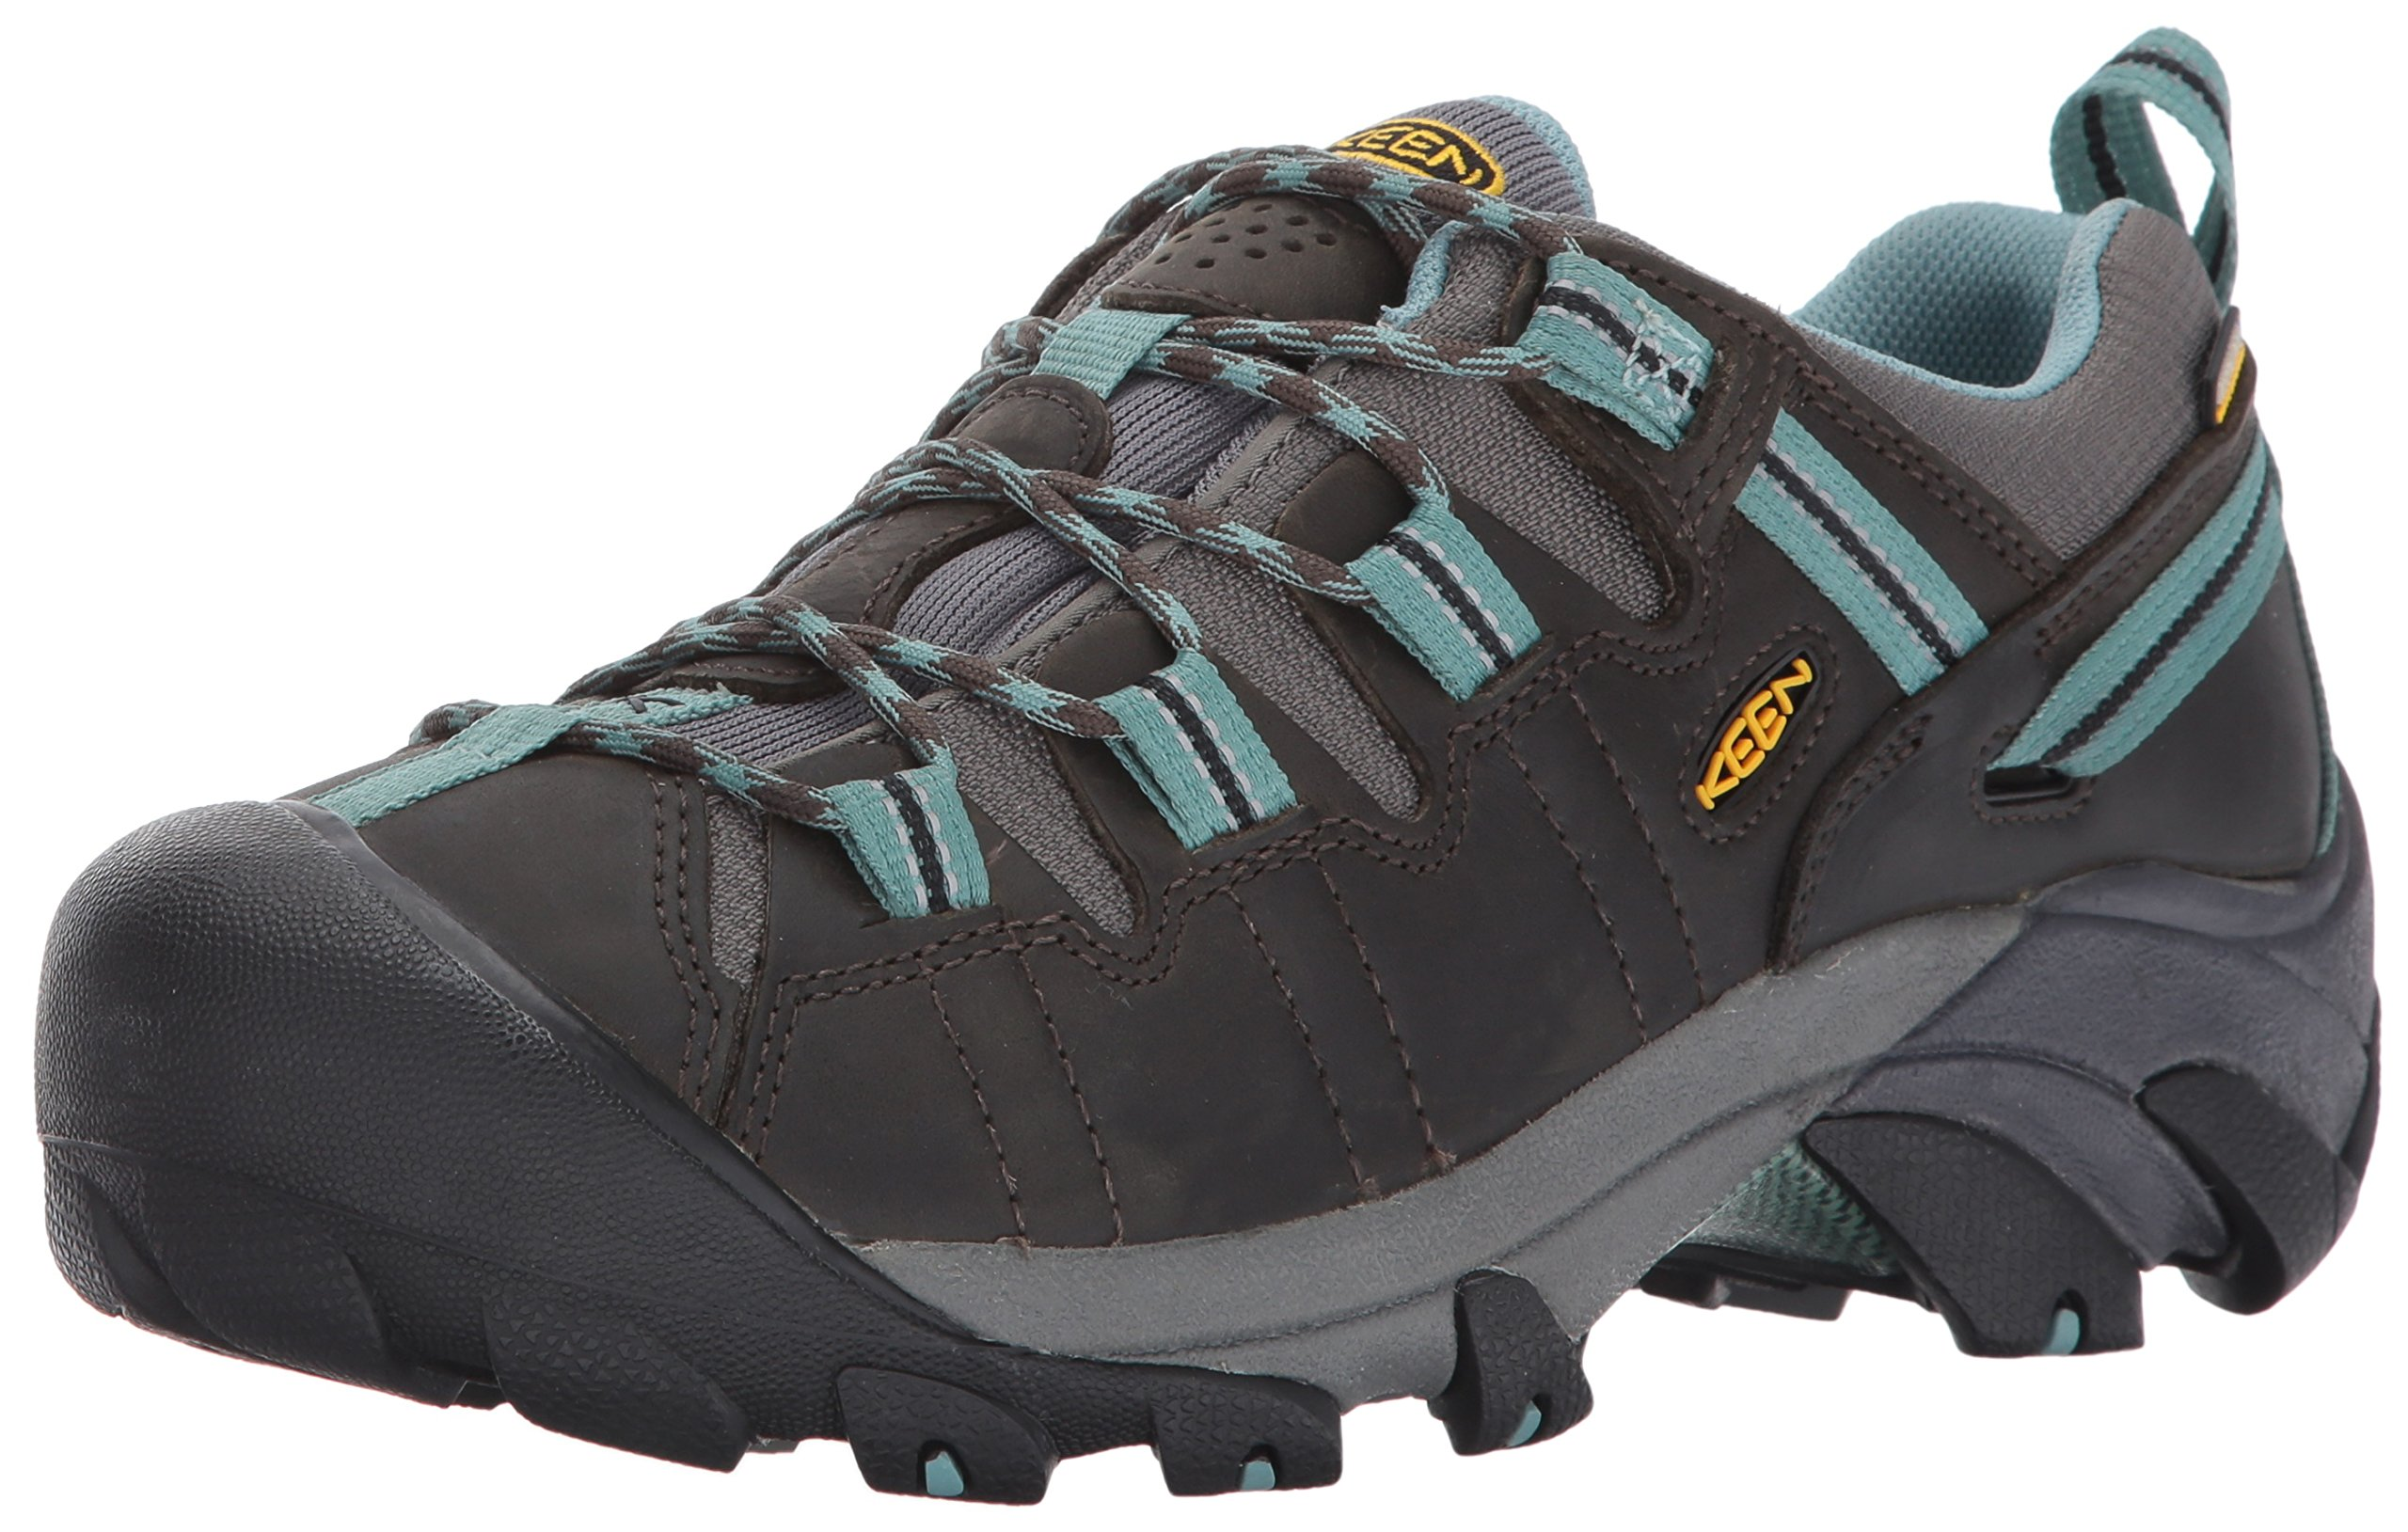 KEEN Women's Targhee II Outdoor Shoe, Black Olive/Mineral Blue, 10 M US